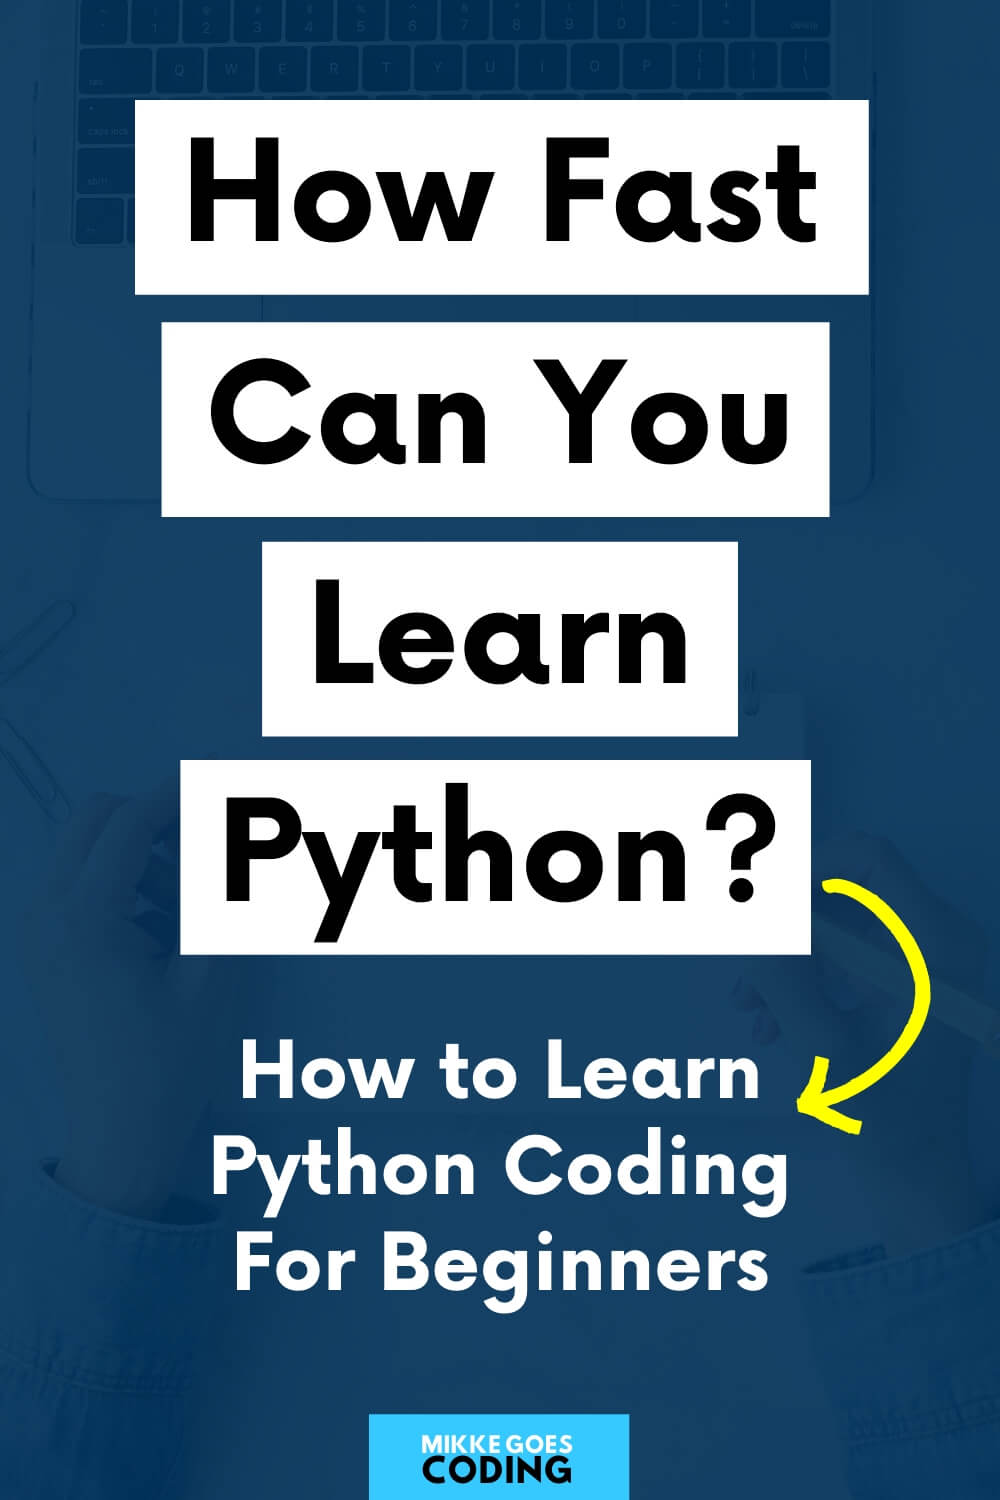 How much time does it take to learn Python programming for beginners